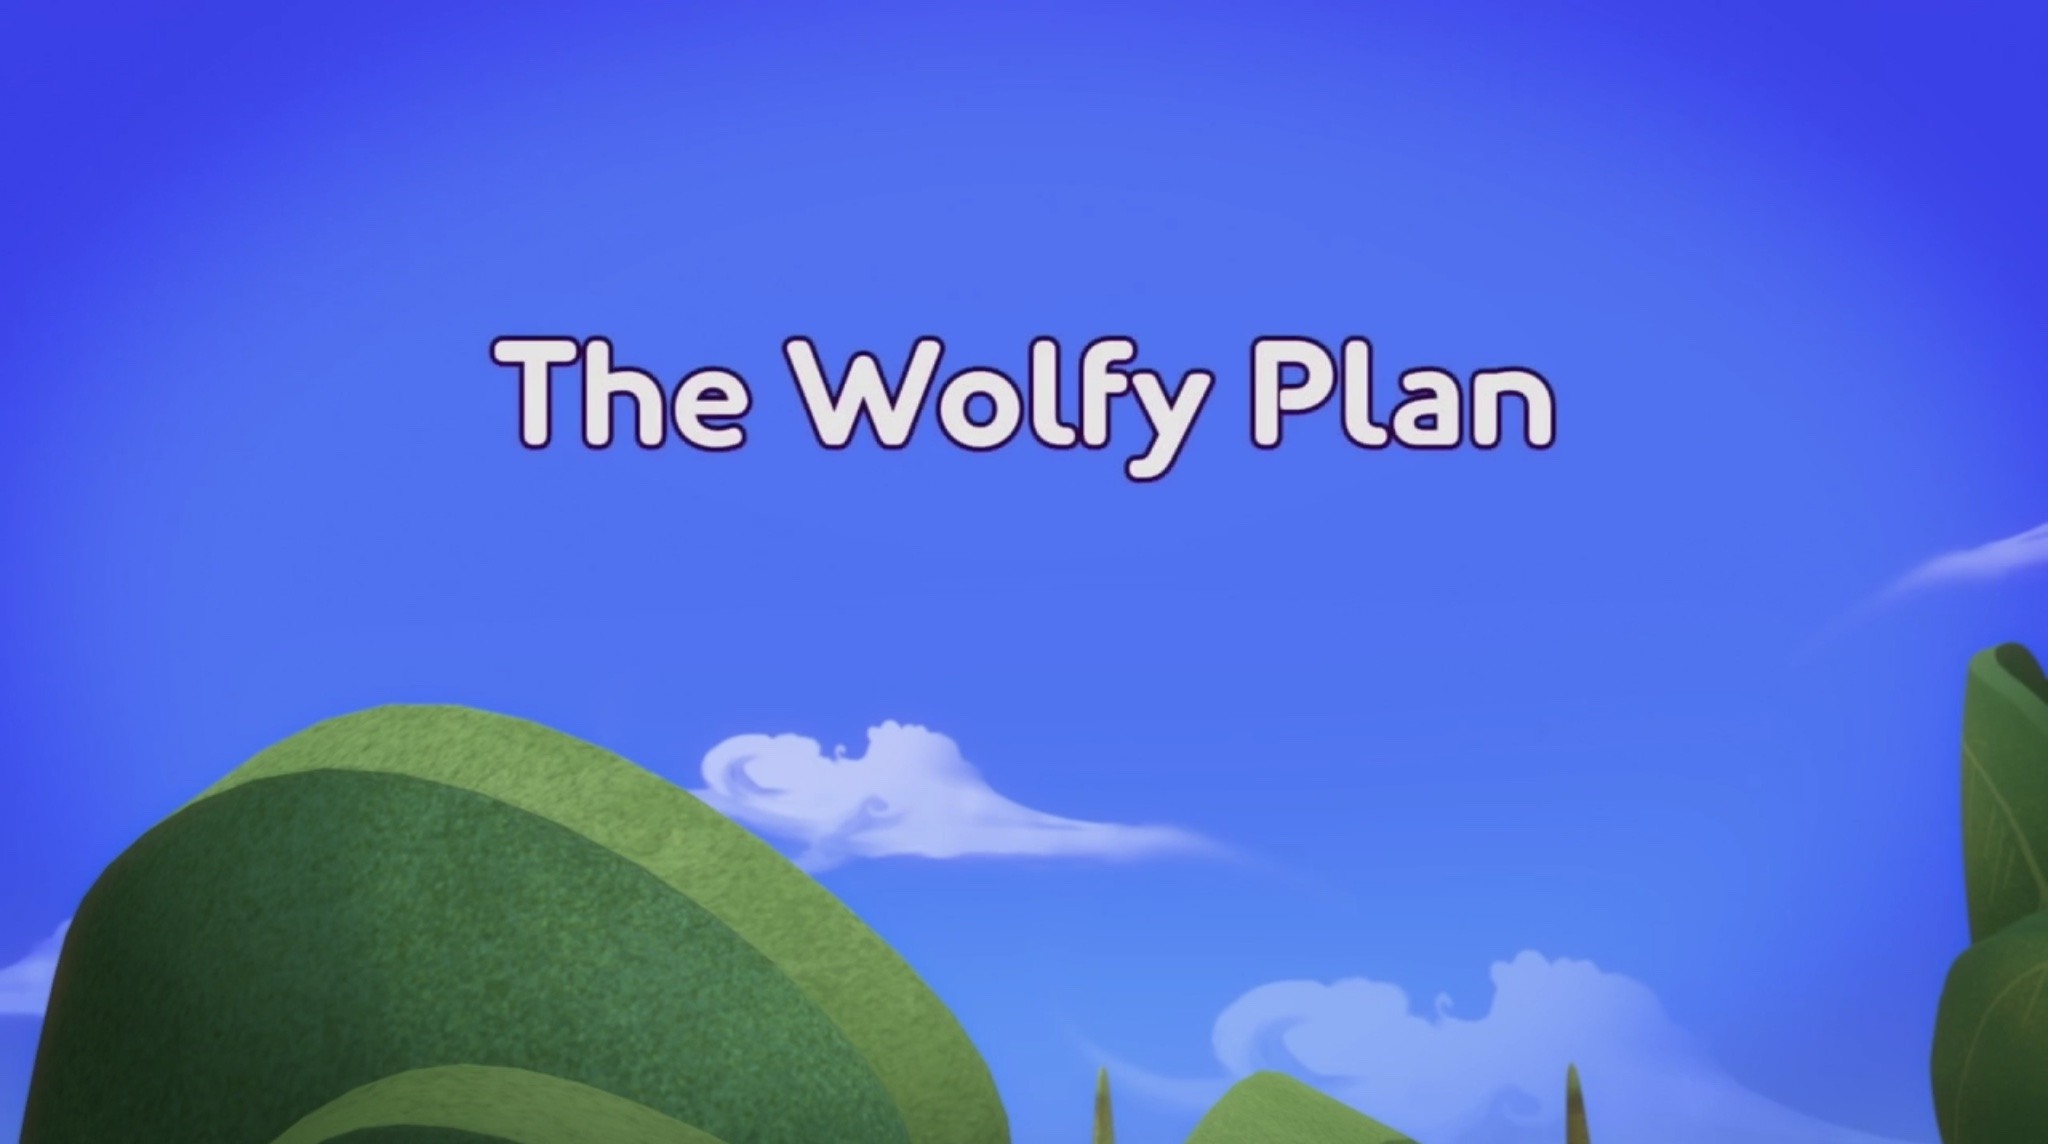 The Wolfy Plan